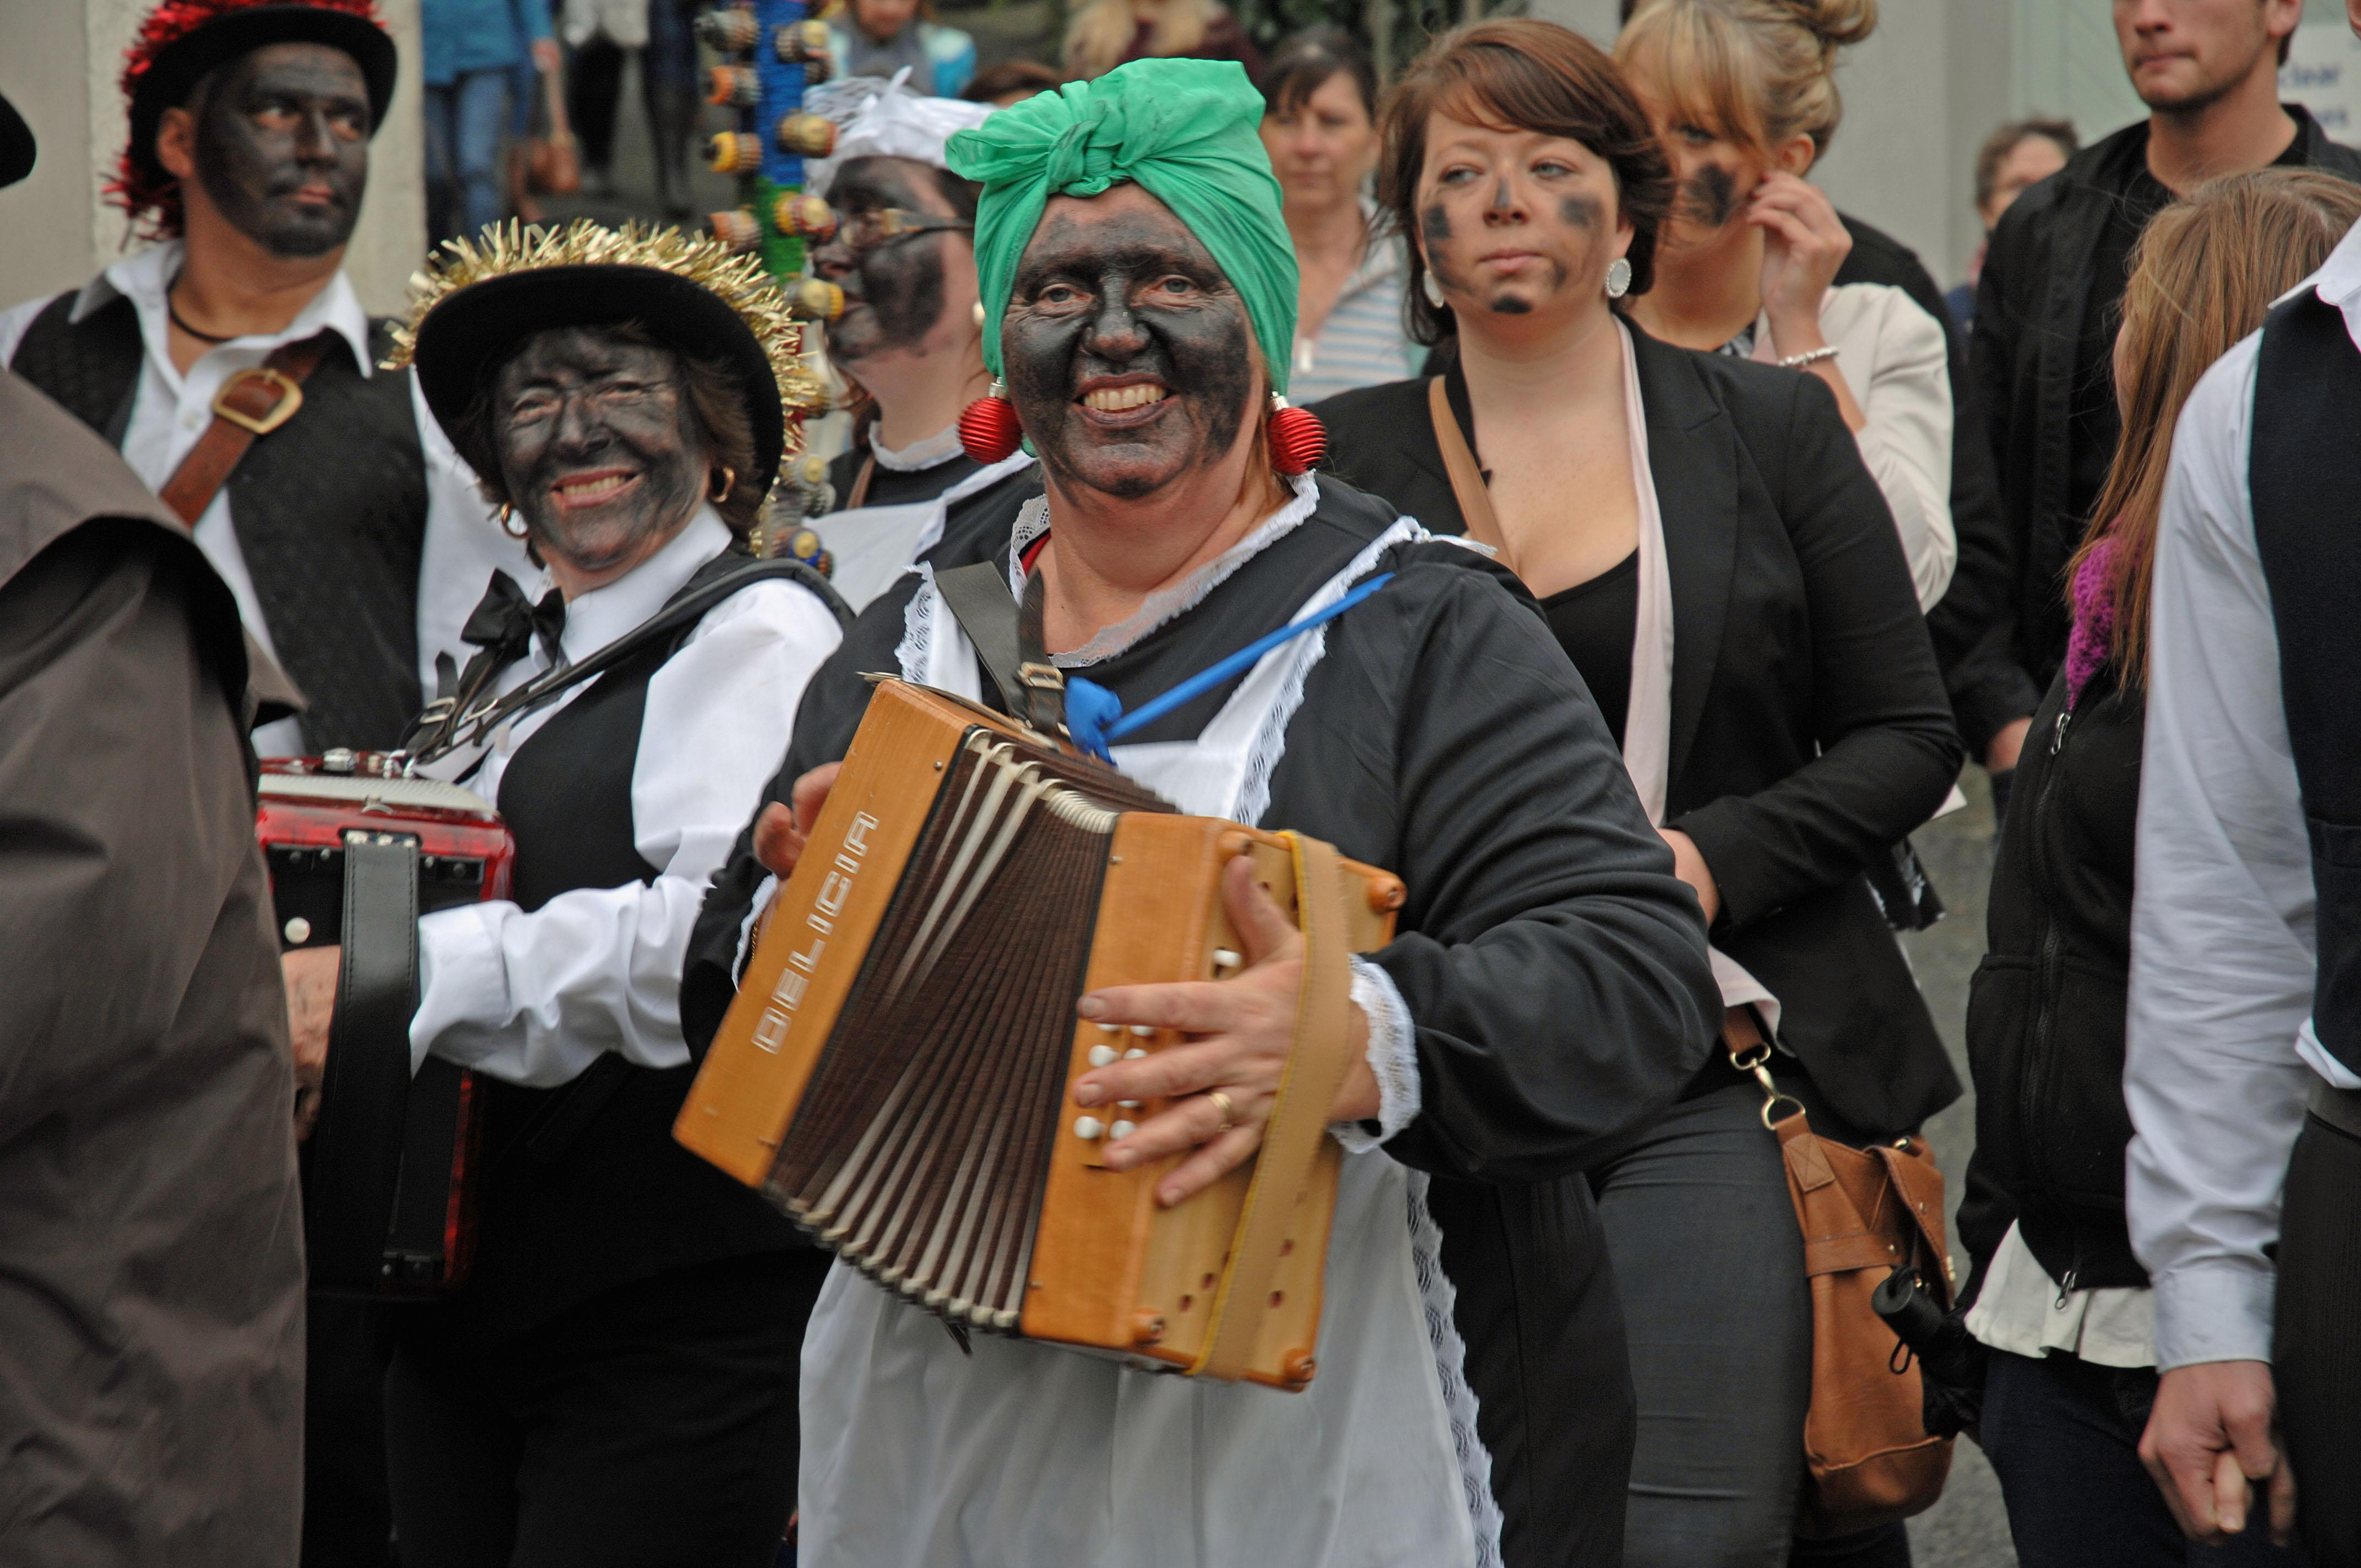 What date is Mummer's Day 2018, what's the Cornish festival about and why is it controversial?